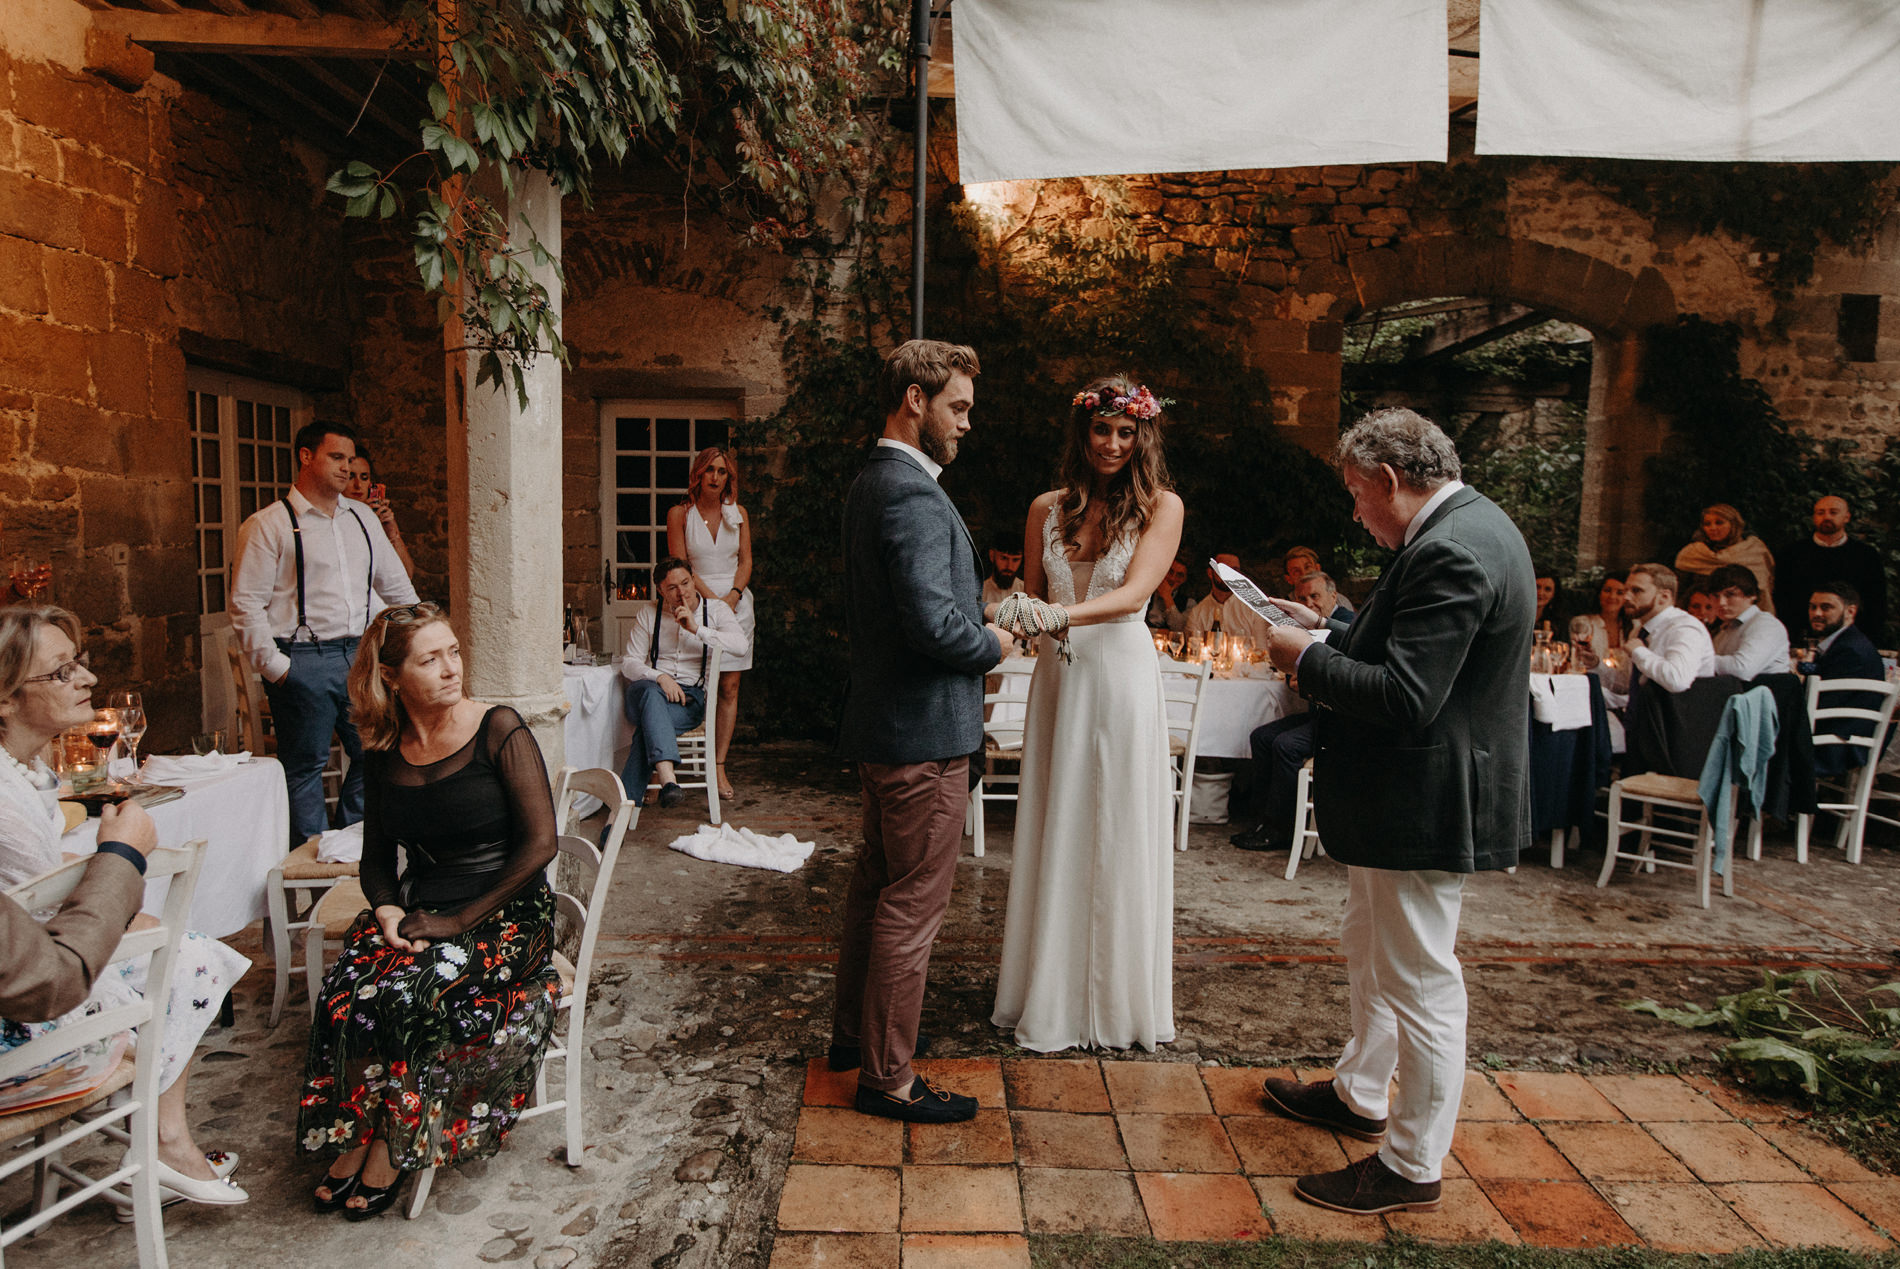 Labbaye chateau de camon wedding